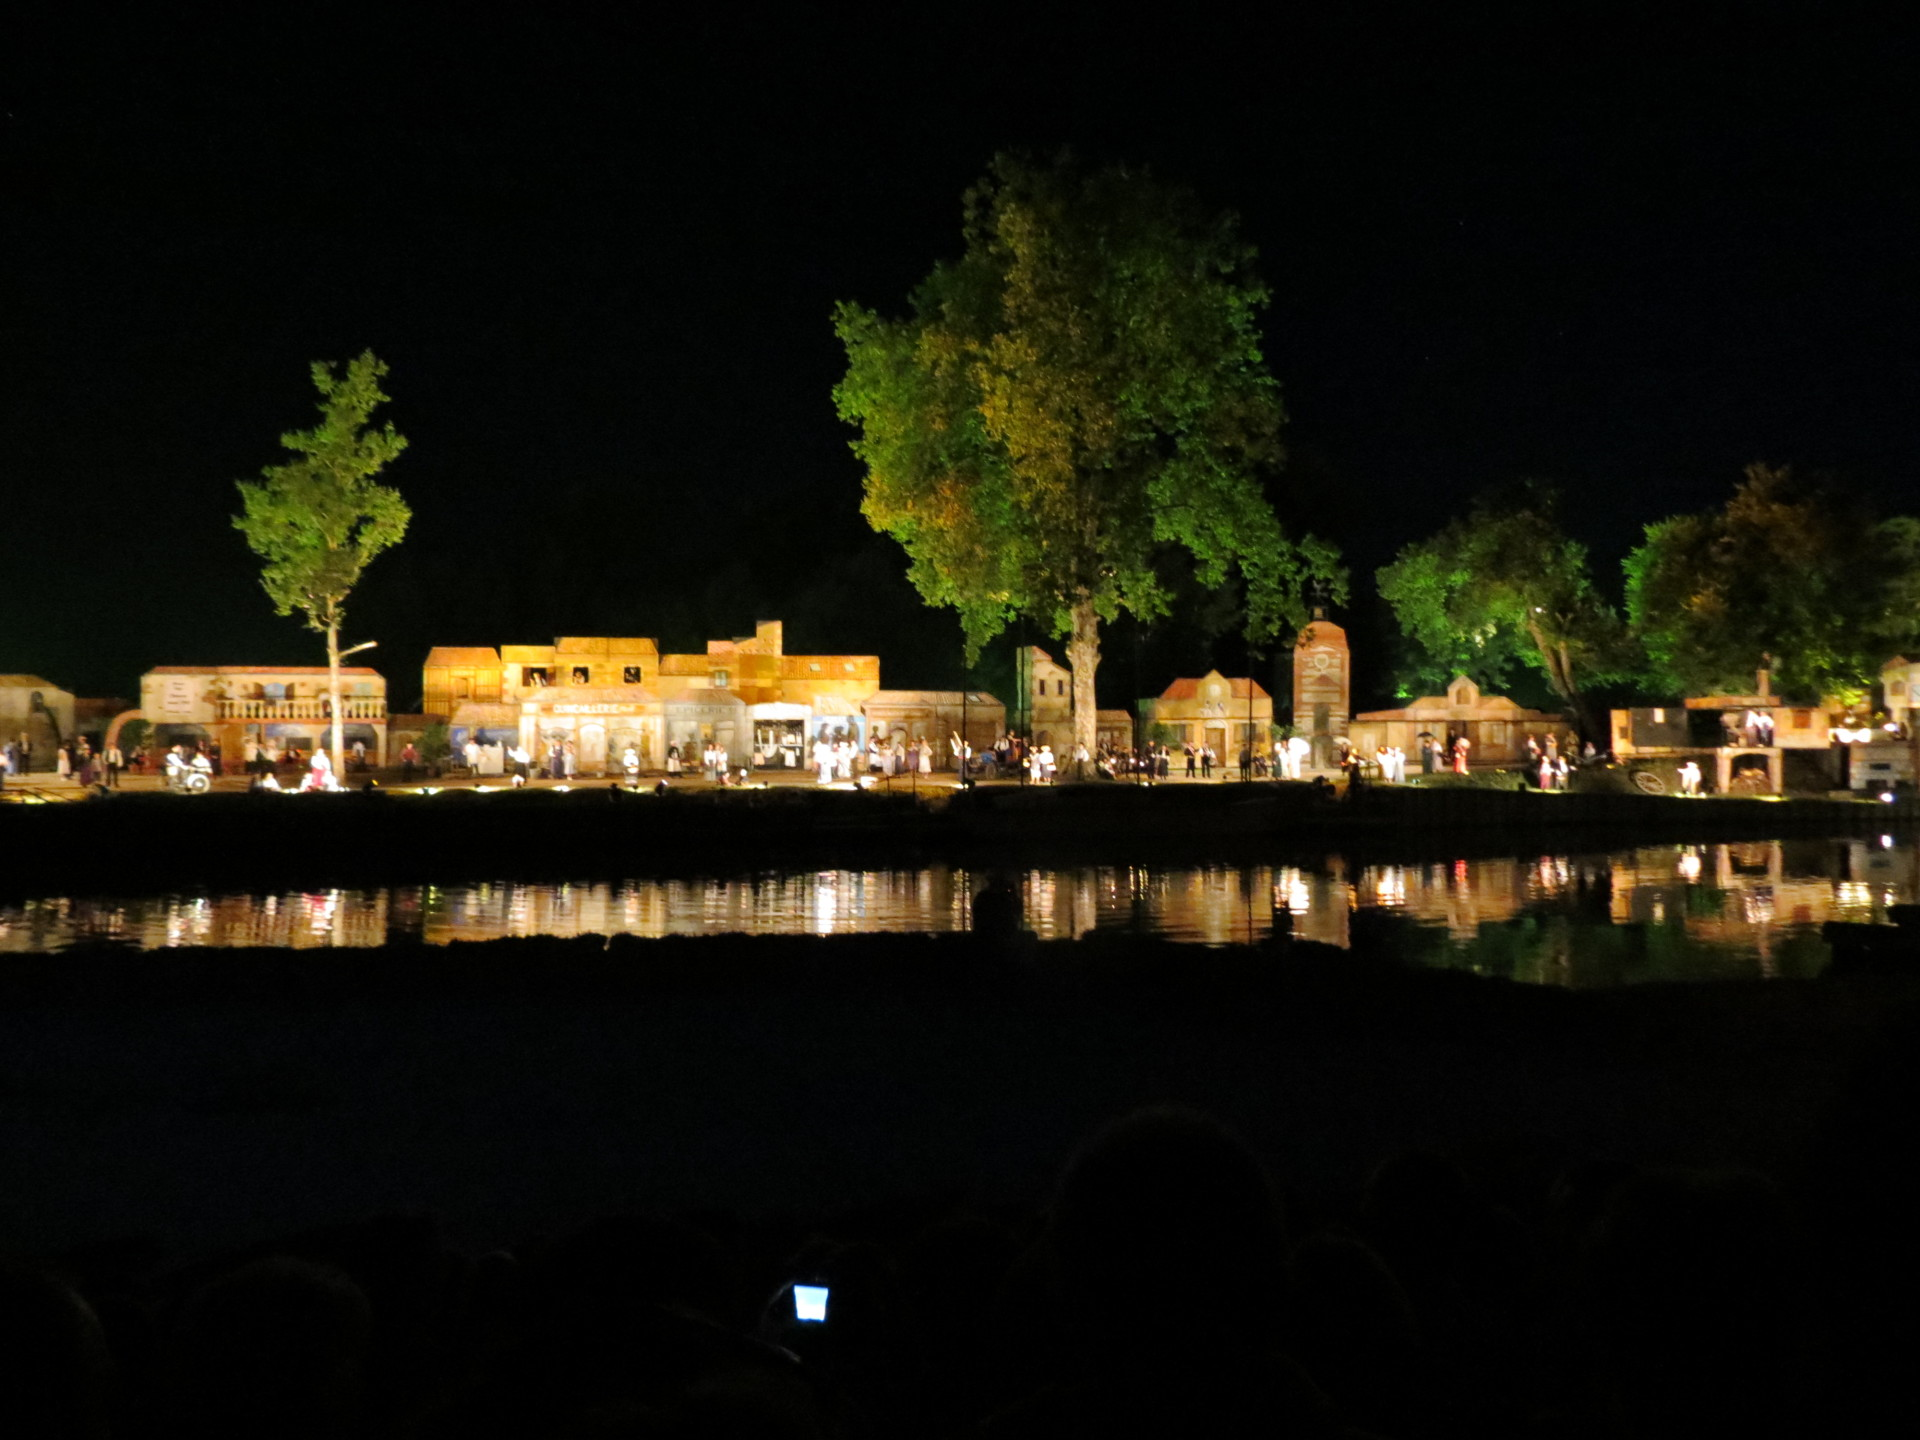 Son et Lumiere at Valence d'Agen